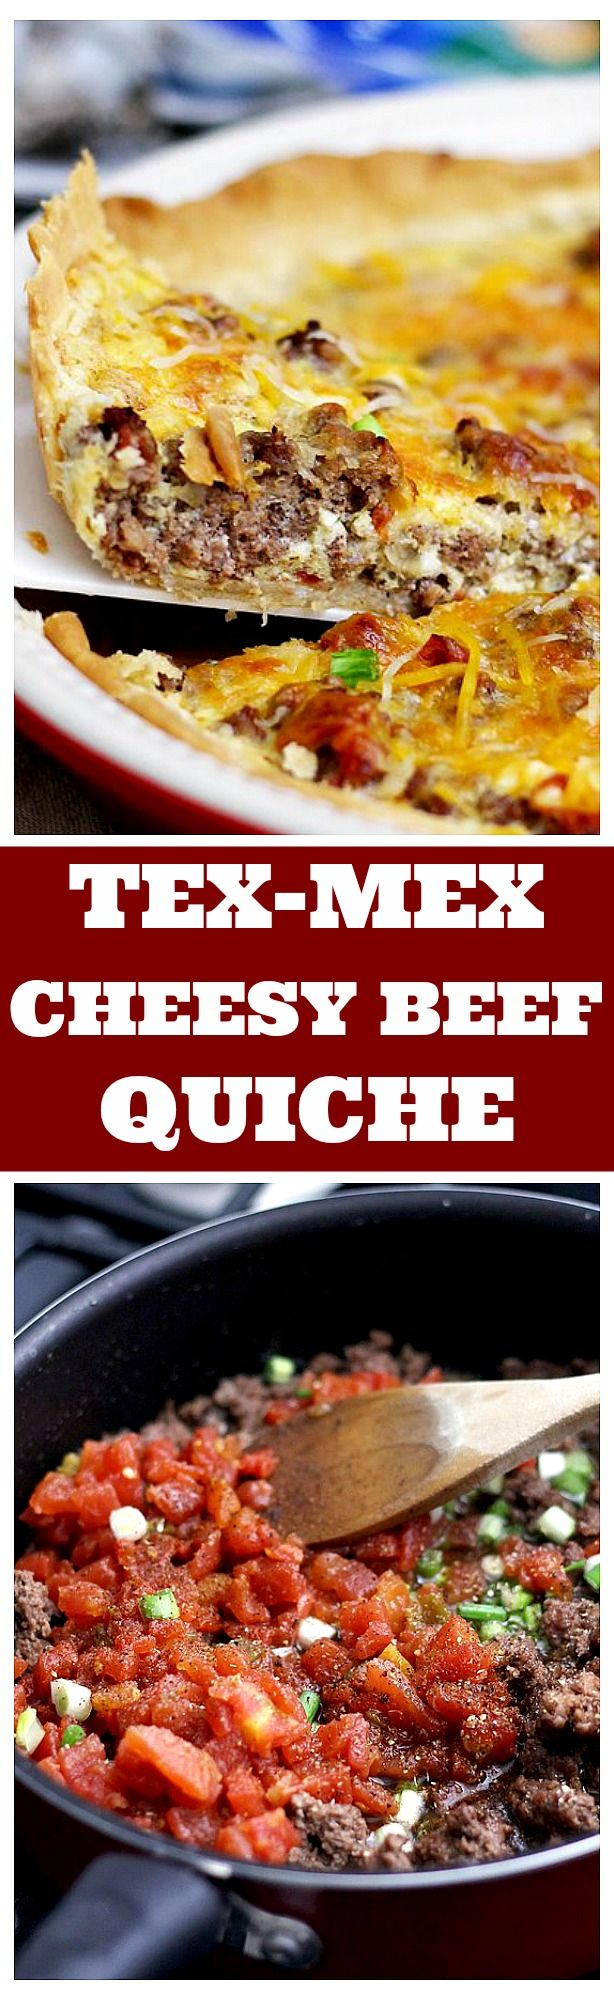 This Tex-Mex Cheesy Beef Quiche is a great weeknight meal, filled with the delicious flavors of the Southwest and topped with handfuls of Taco Shredded Cheese.